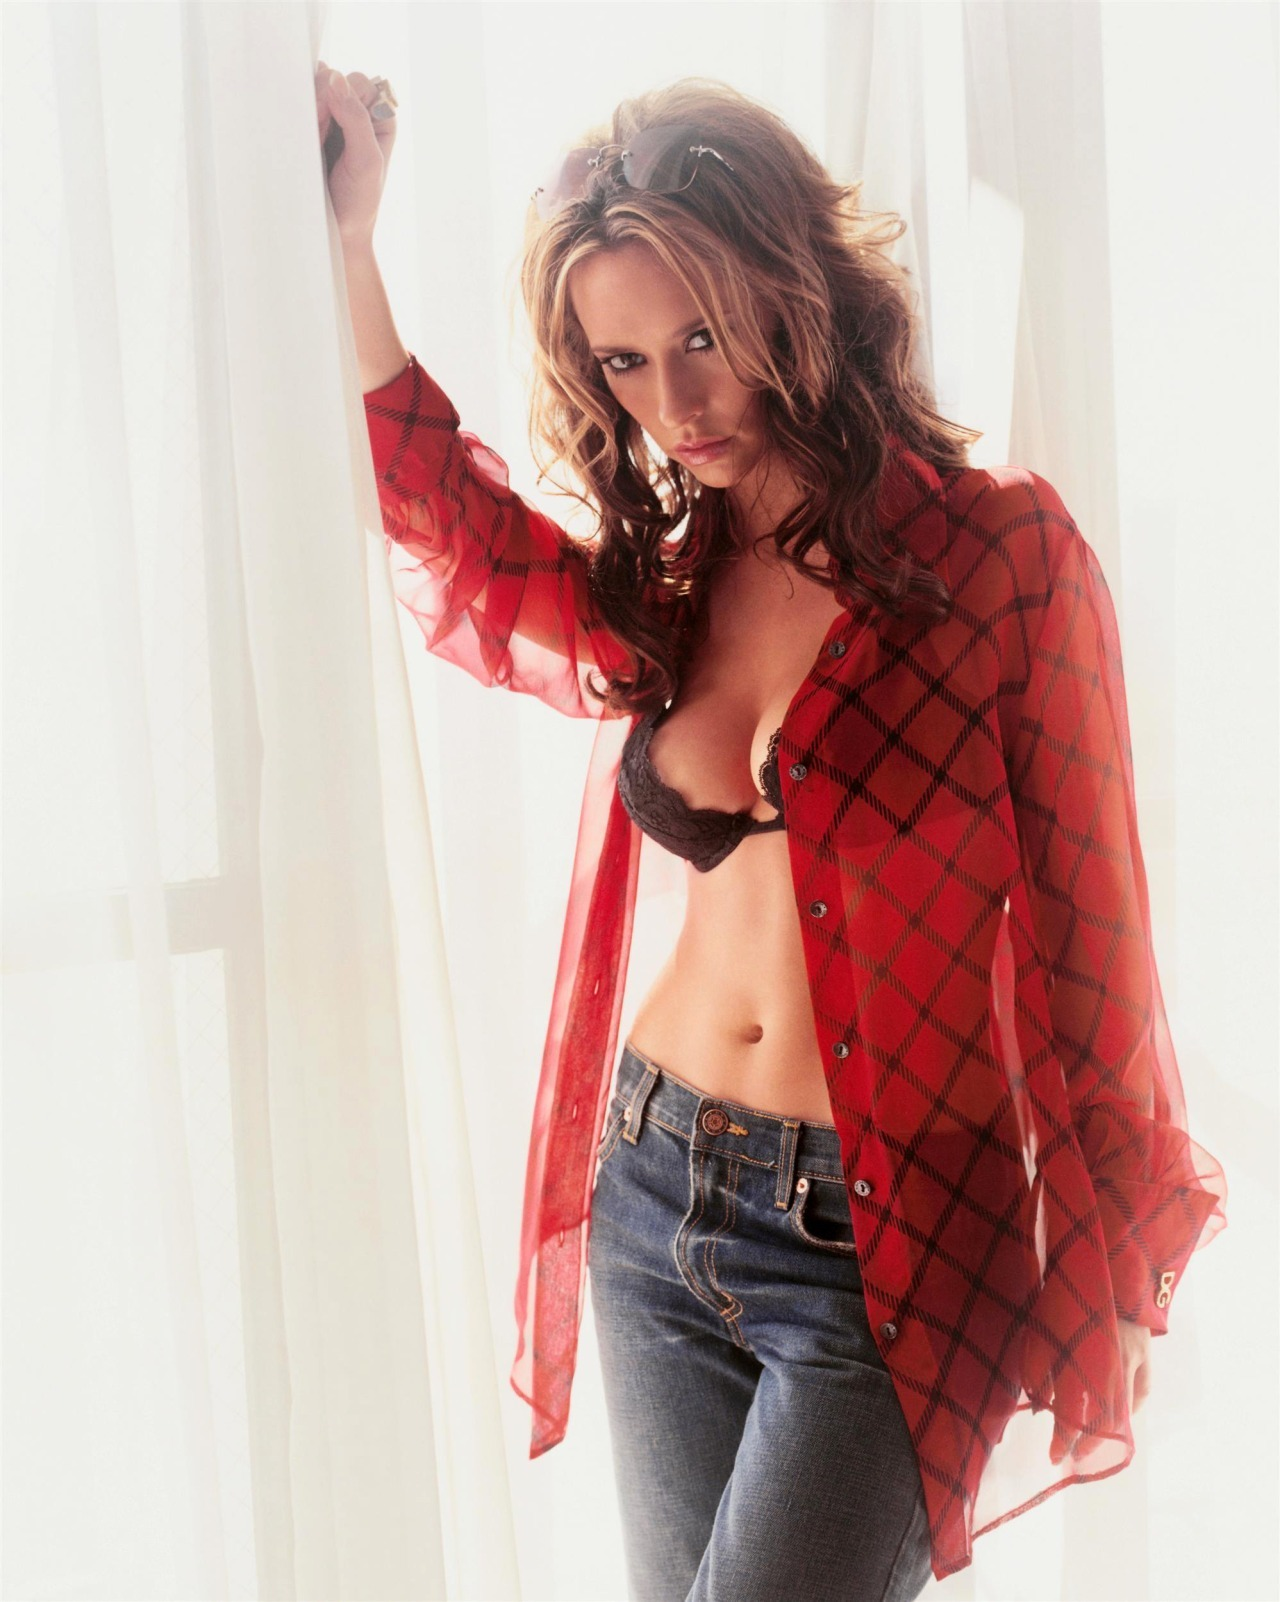 70+ Hot Pictures Of Jennifer Love Hewitt Are Here For You To Appreciate This Evergreen Beauty ...